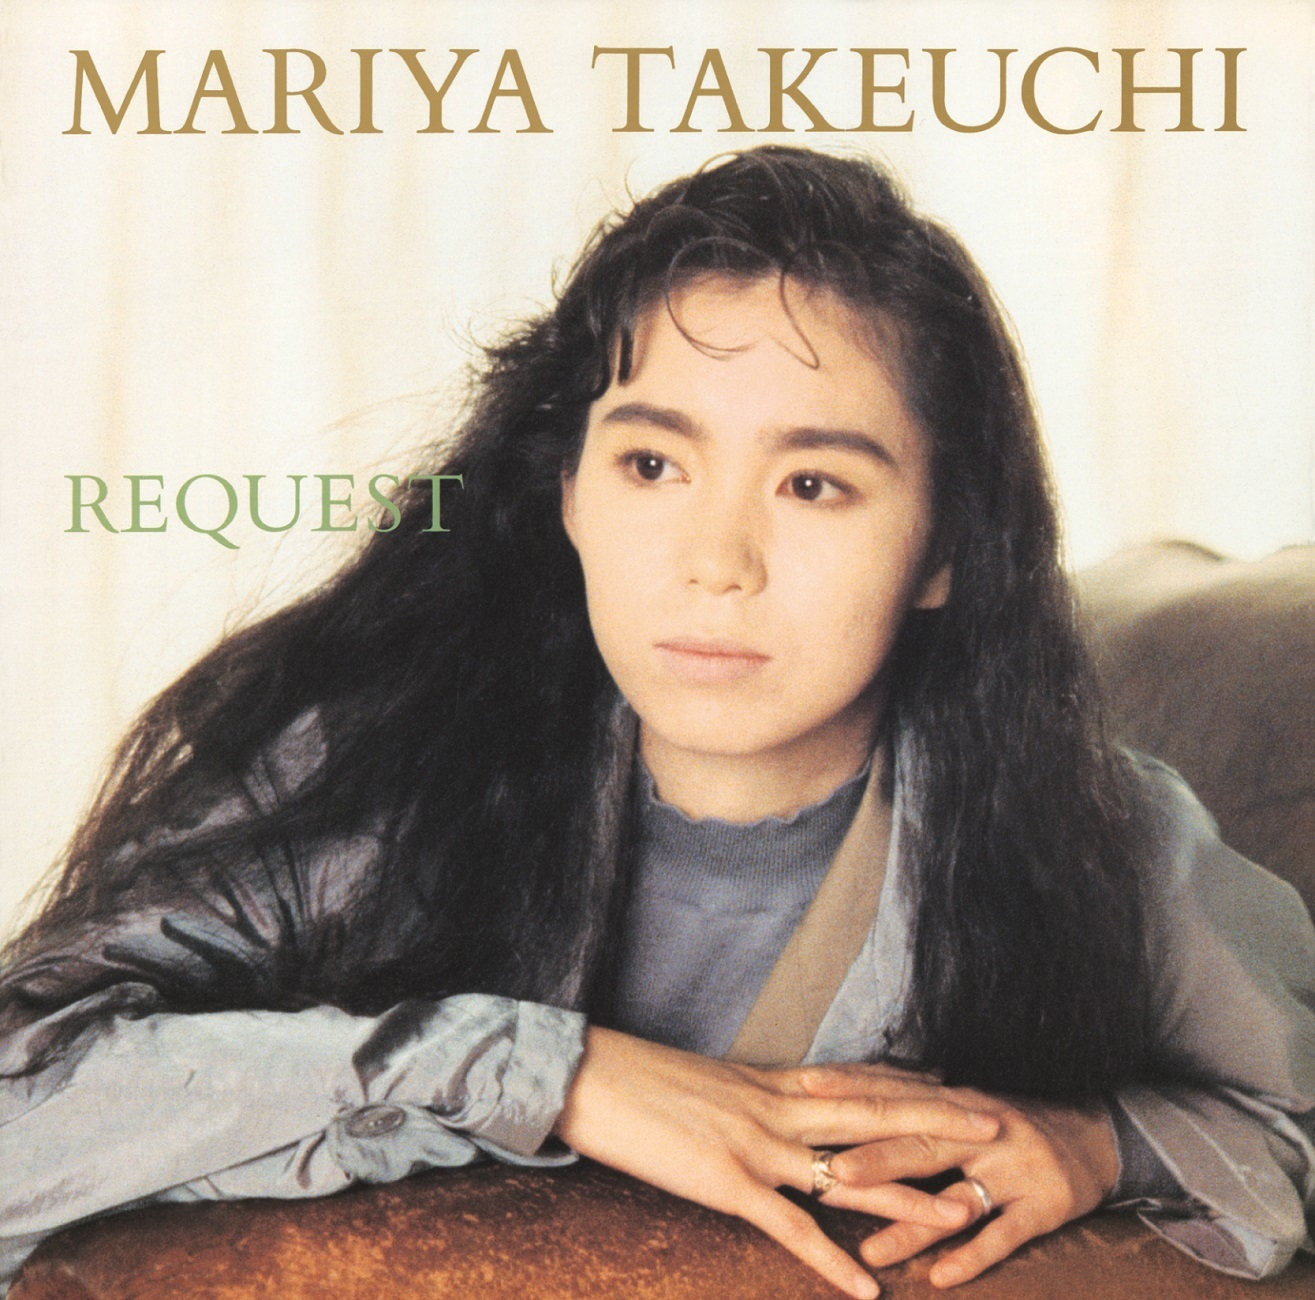 竹内まりや『REQUEST -30th ANNIVERSARY EDITION-』